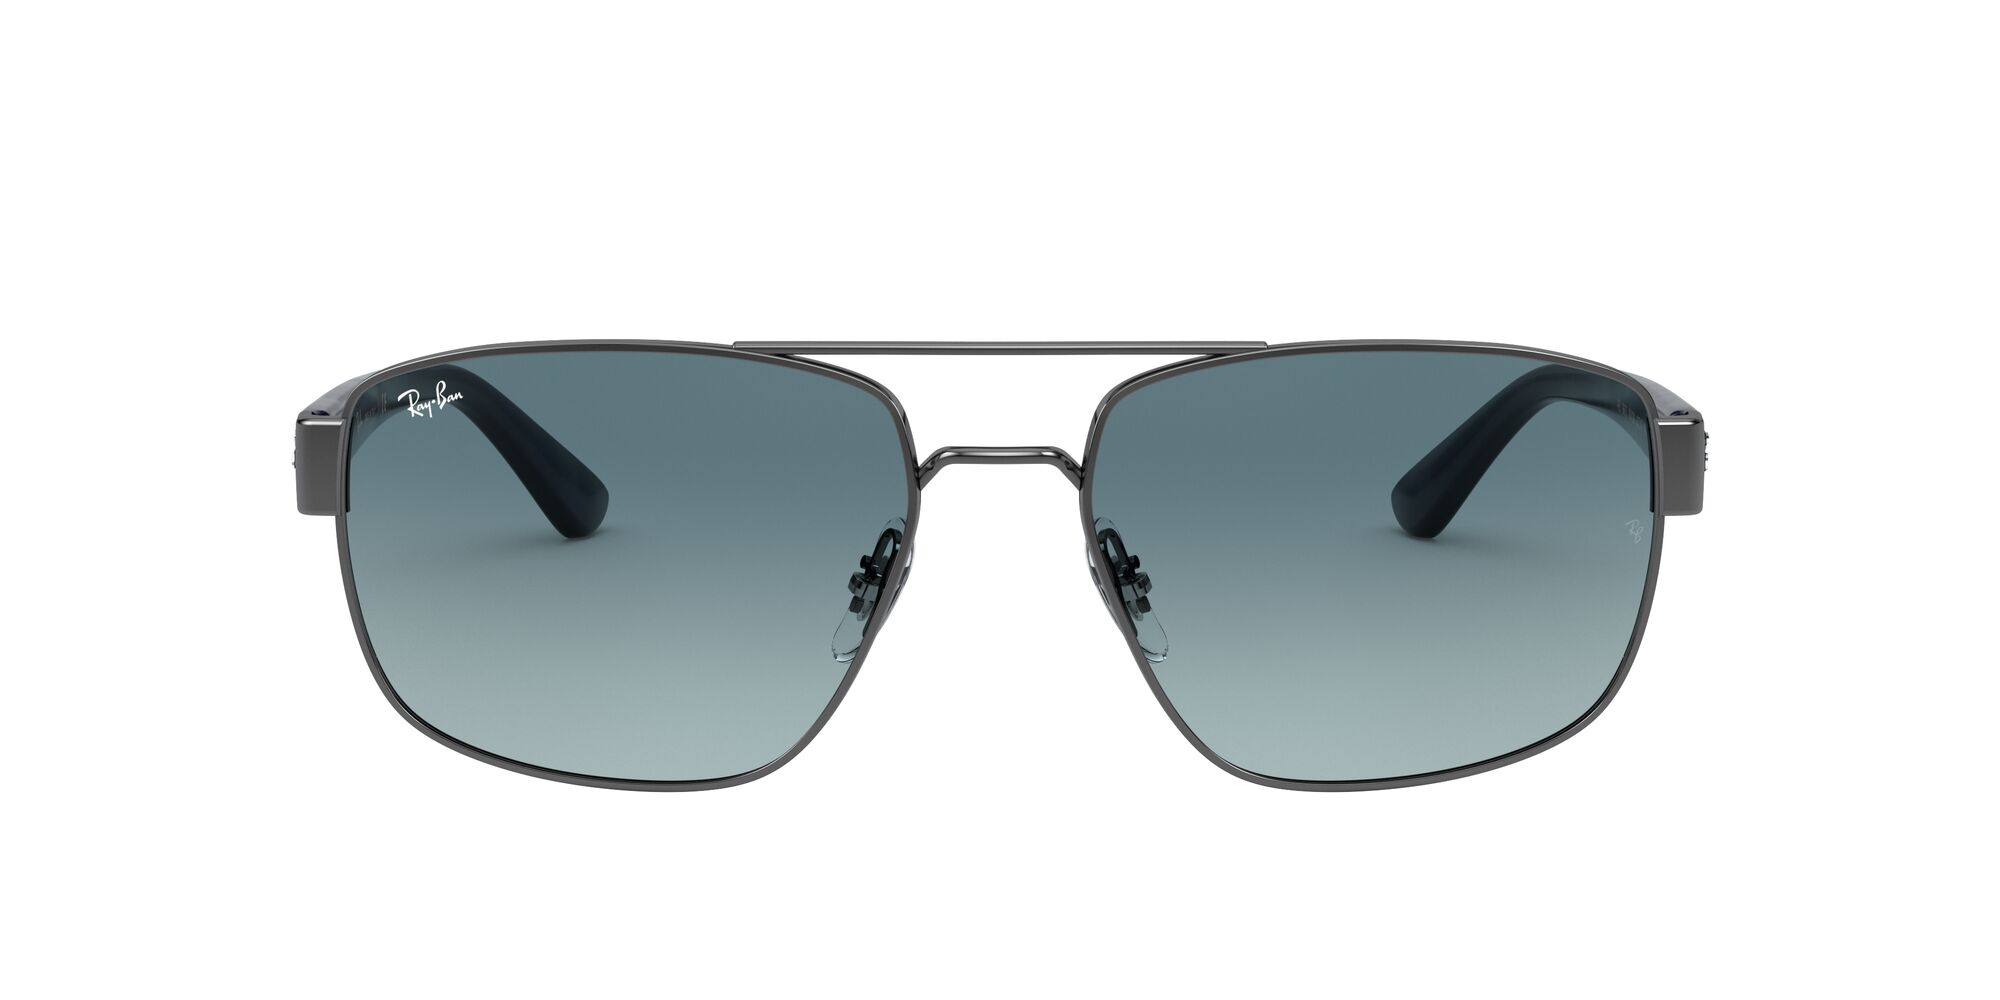 Front Ray-Ban Ray-Ban 0RB3663 004/3M 59/17 Zilver/Blauw